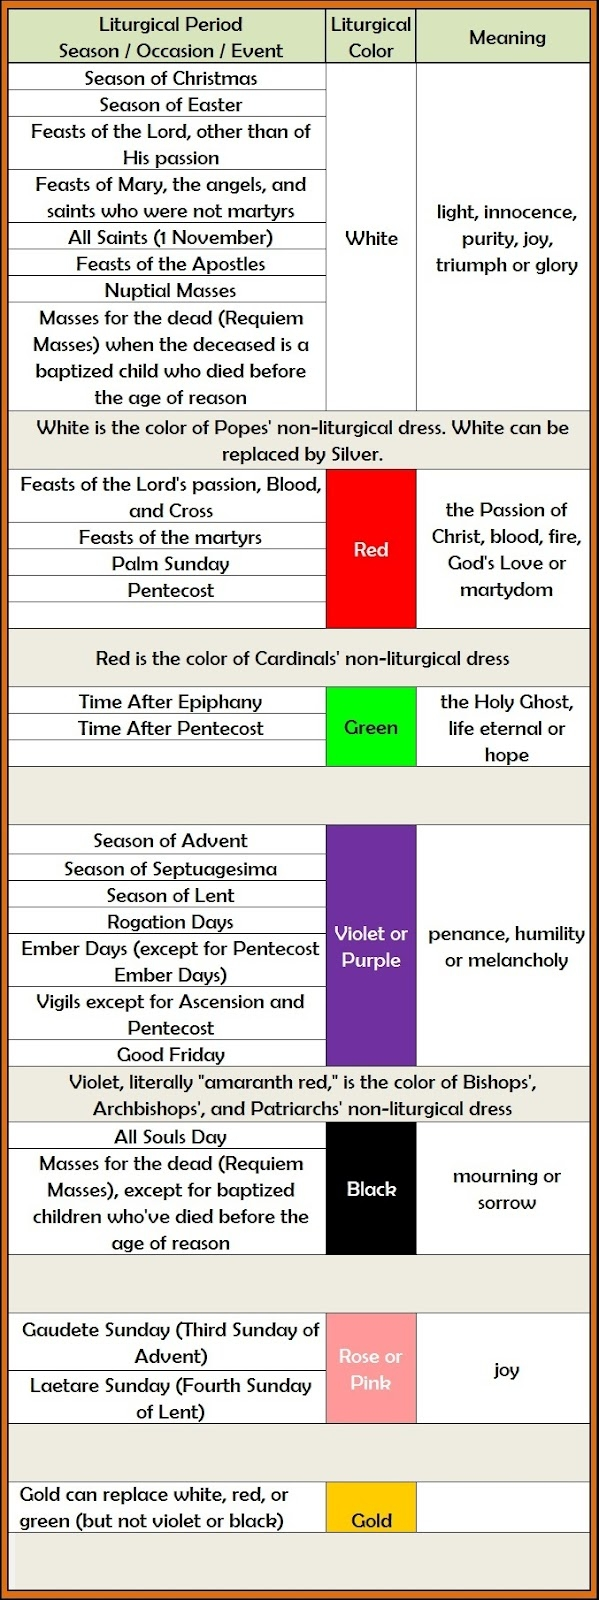 The Symbolic Meaning Of Liturgical Colors In The Catholic Church  Xjb